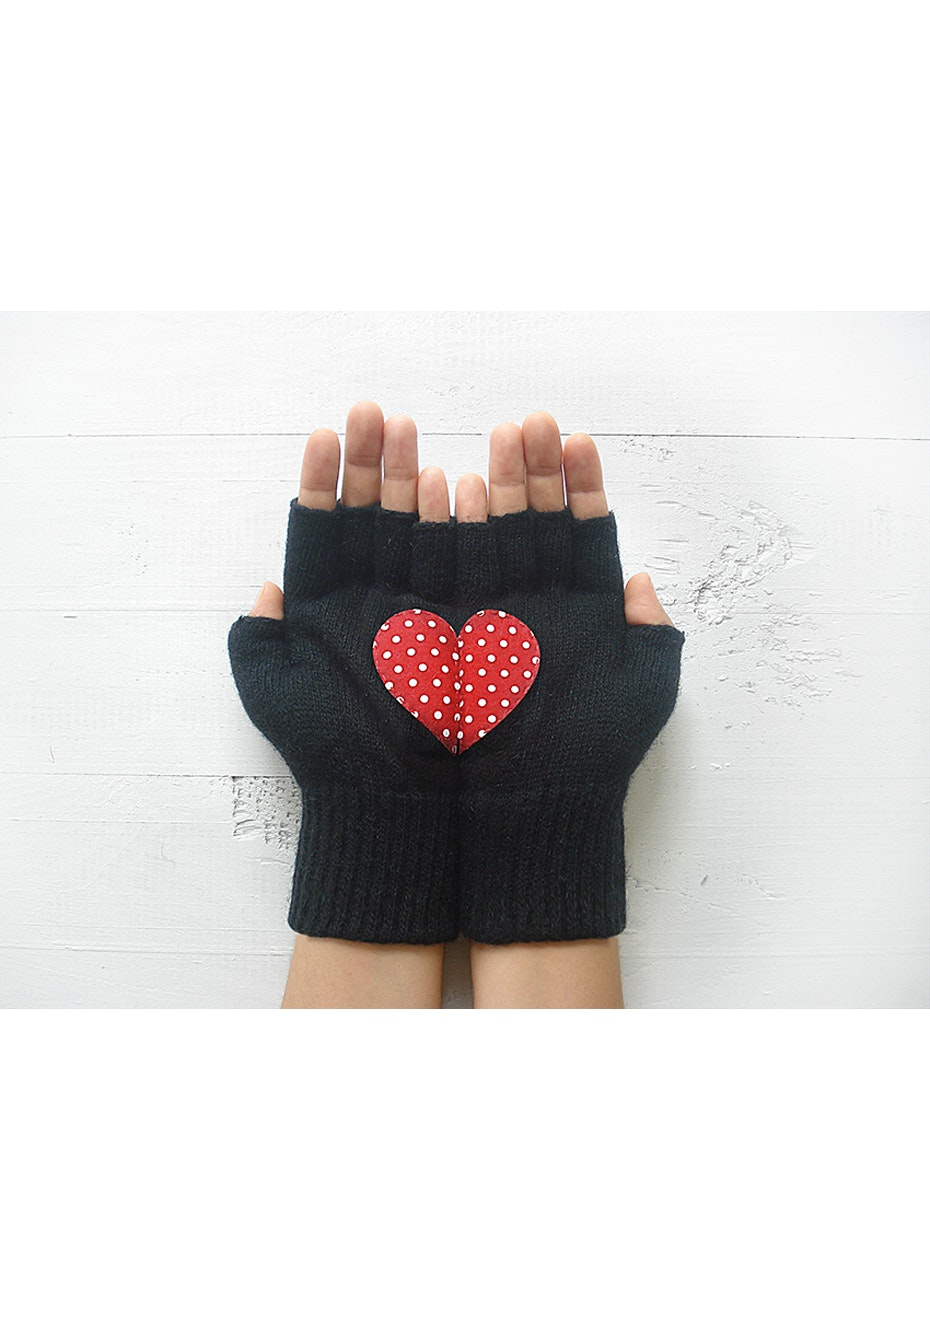 Heart Fingerless Gloves - Black/Red Polka Dot